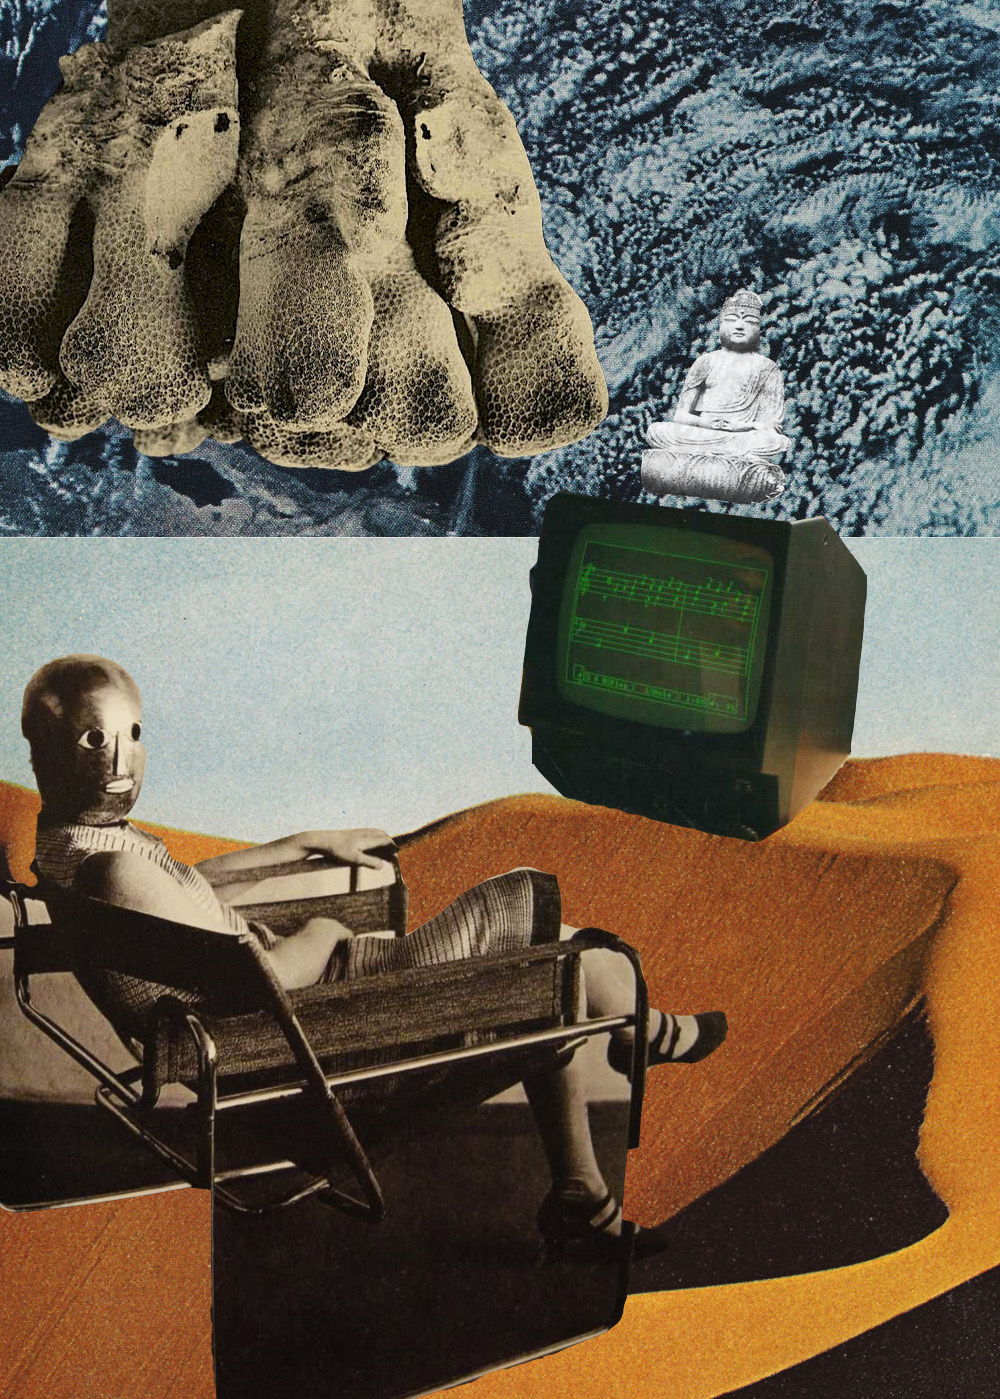 Bauhaus & Buddha [collage, 2015]